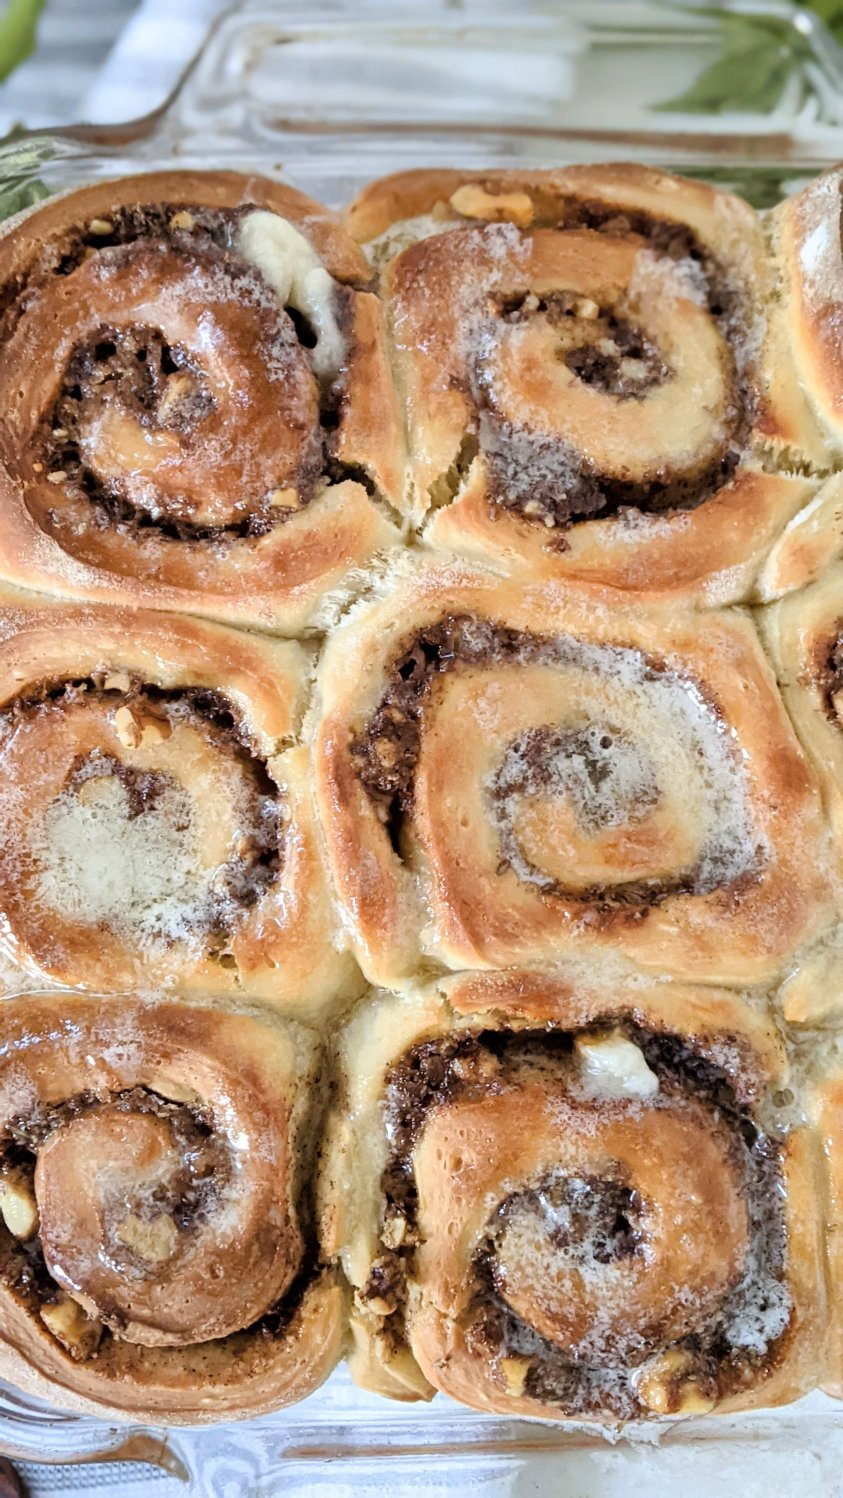 sourdough cinnamons recipe brioche weekend brunch cinnamon rolls for guests homemade sourdough breakfast buns recipe sourdough sticky buns with nuts and icing recipe